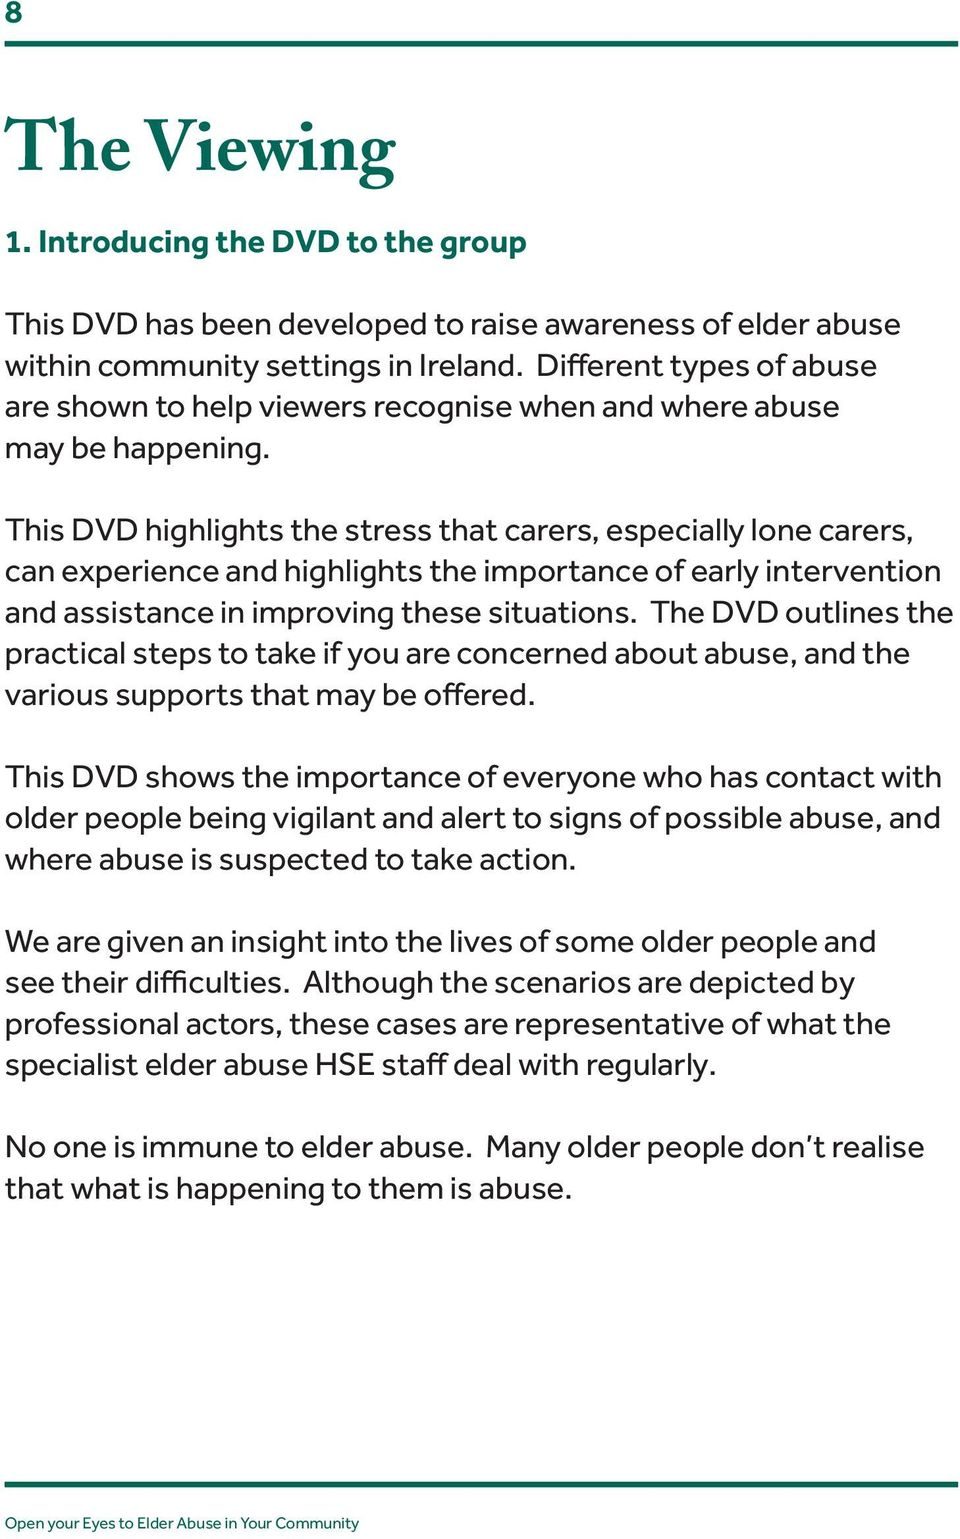 This DVD highlights the stress that carers, especially lone carers, can experience and highlights the importance of early intervention and assistance in improving these situations.